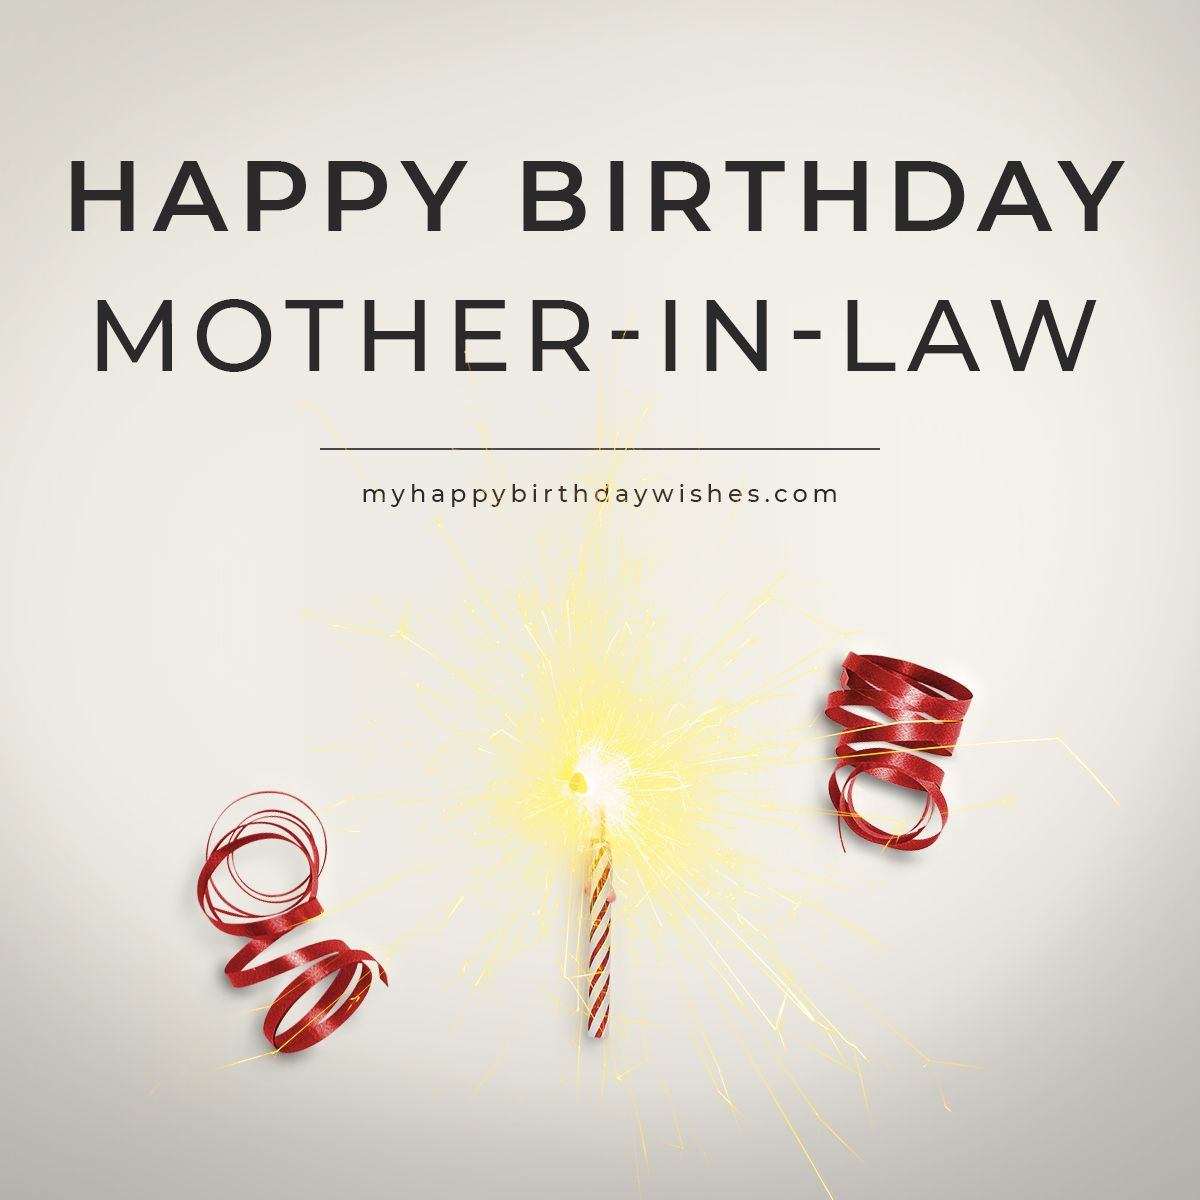 Not Sure How To Wish Your Mother In Law A Happy Birthday Then This Board Is For You Let Us He Happy Birthday Wishes Quotes Birthday Wishes Quotes Wish Quotes